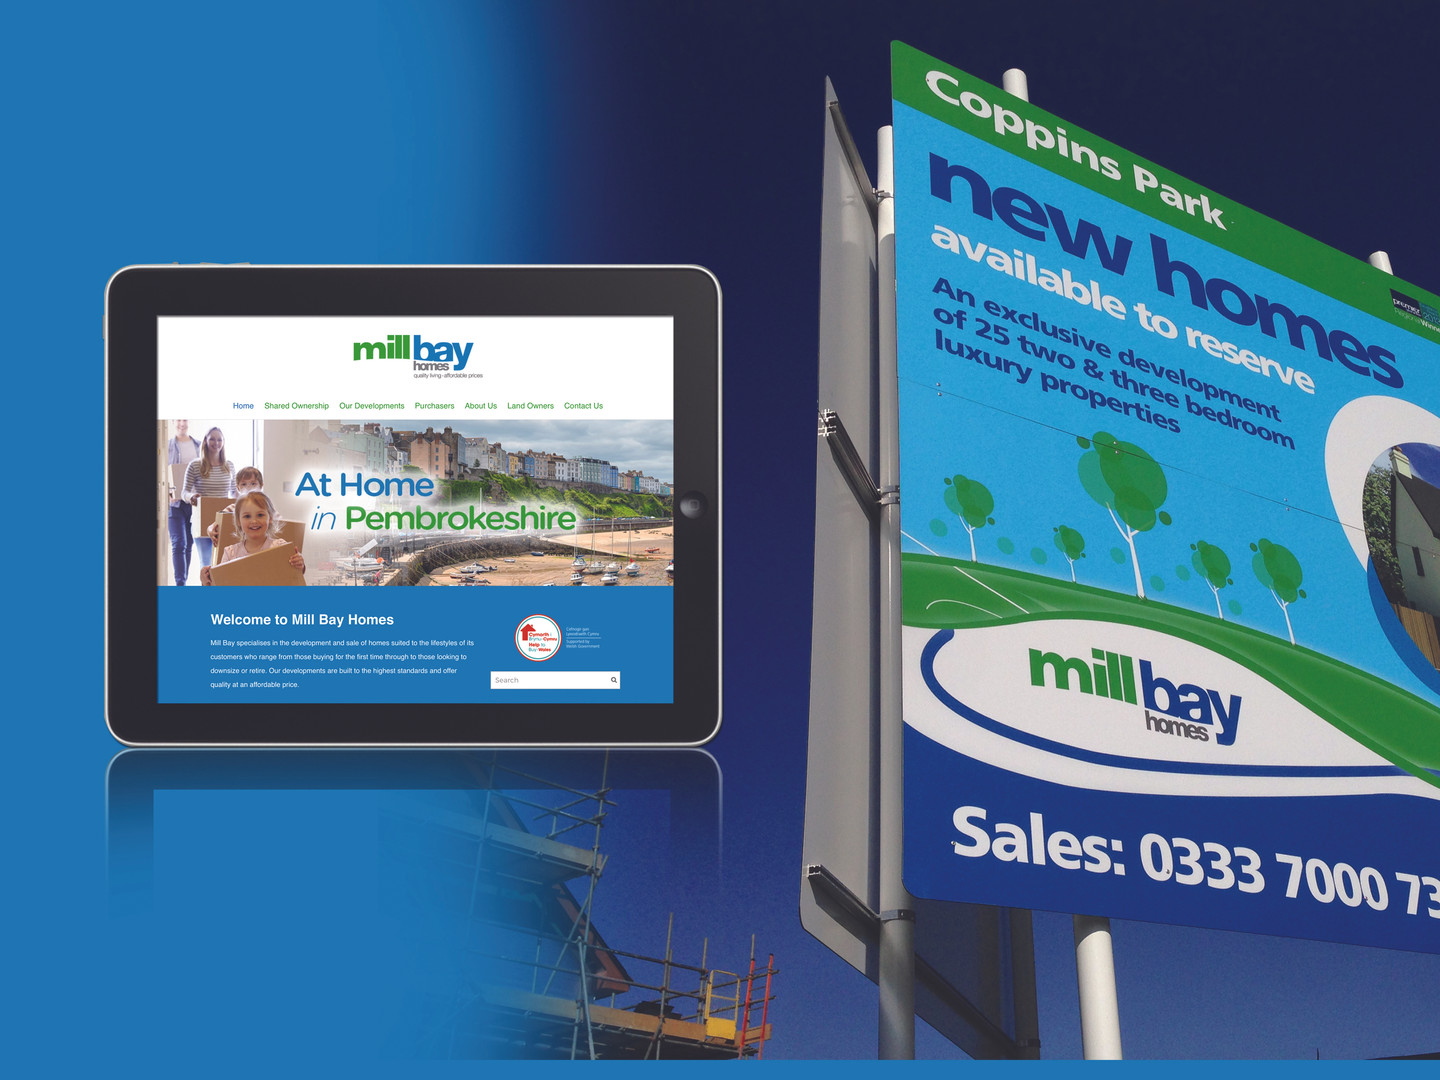 Millbay Homes